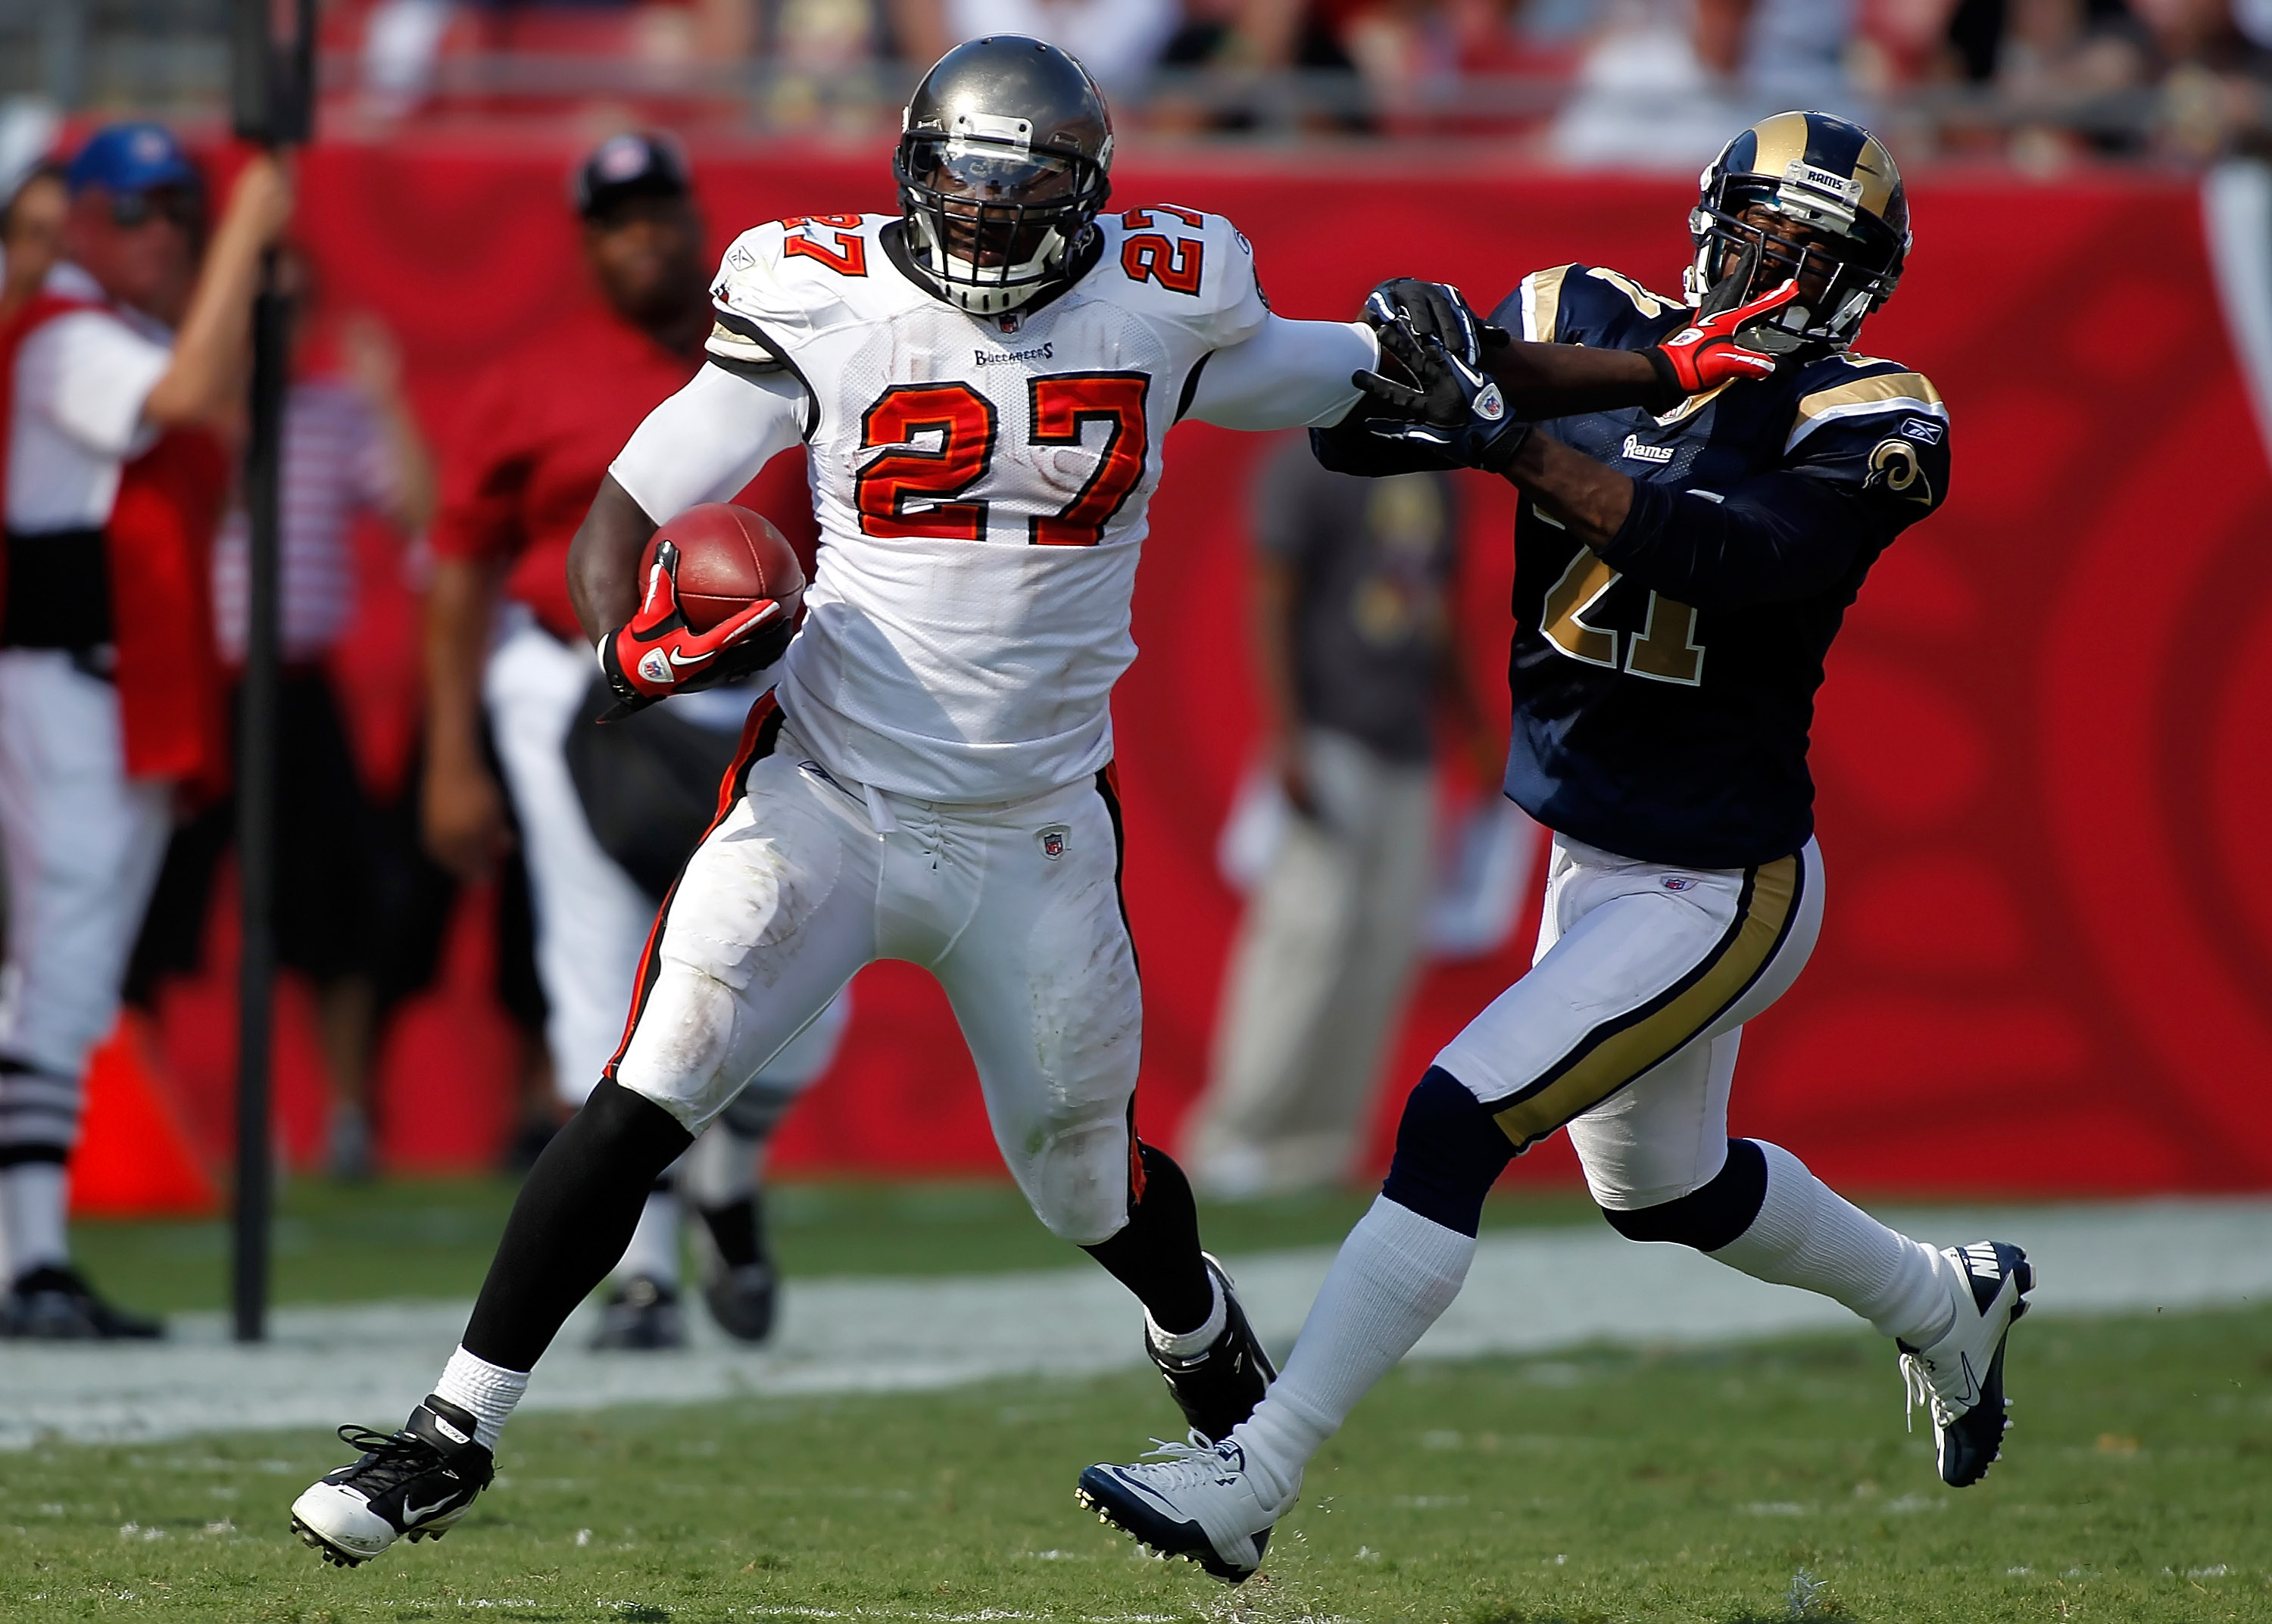 TAMPA, FL - OCTOBER 24:  Running back LeGarrette Blount #27 of the Tampa Bay Buccaneers straight arms safety Oshiomogho Atogwe #21 of the St. Louis Rams during the game at Raymond James Stadium on October 24, 2010 in Tampa, Florida.  (Photo by J. Meric/Ge